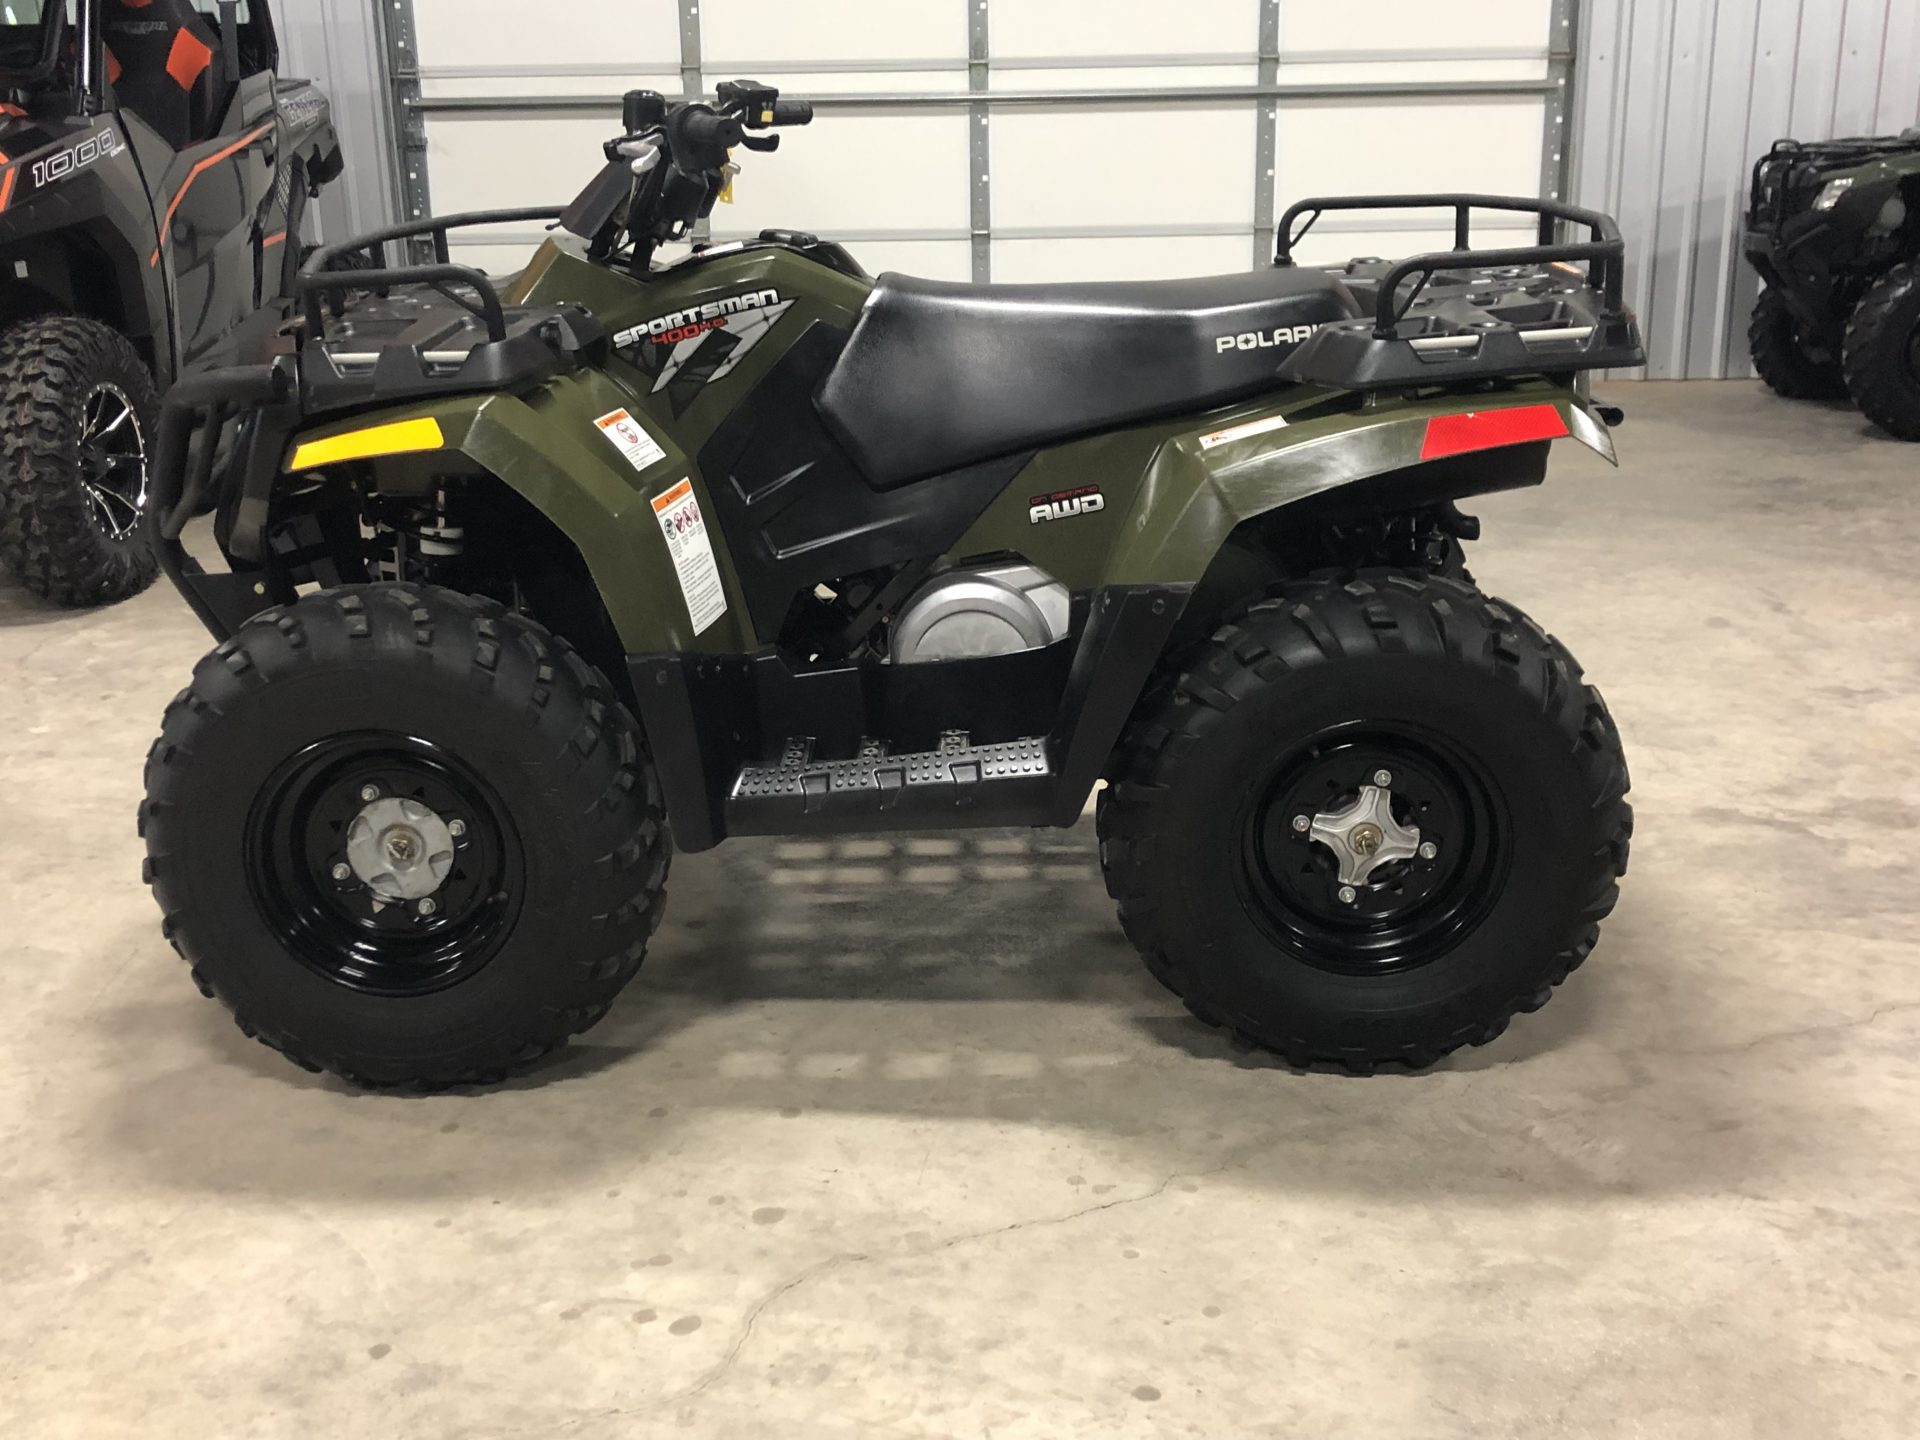 2010 Polaris Sportsman 400 Image